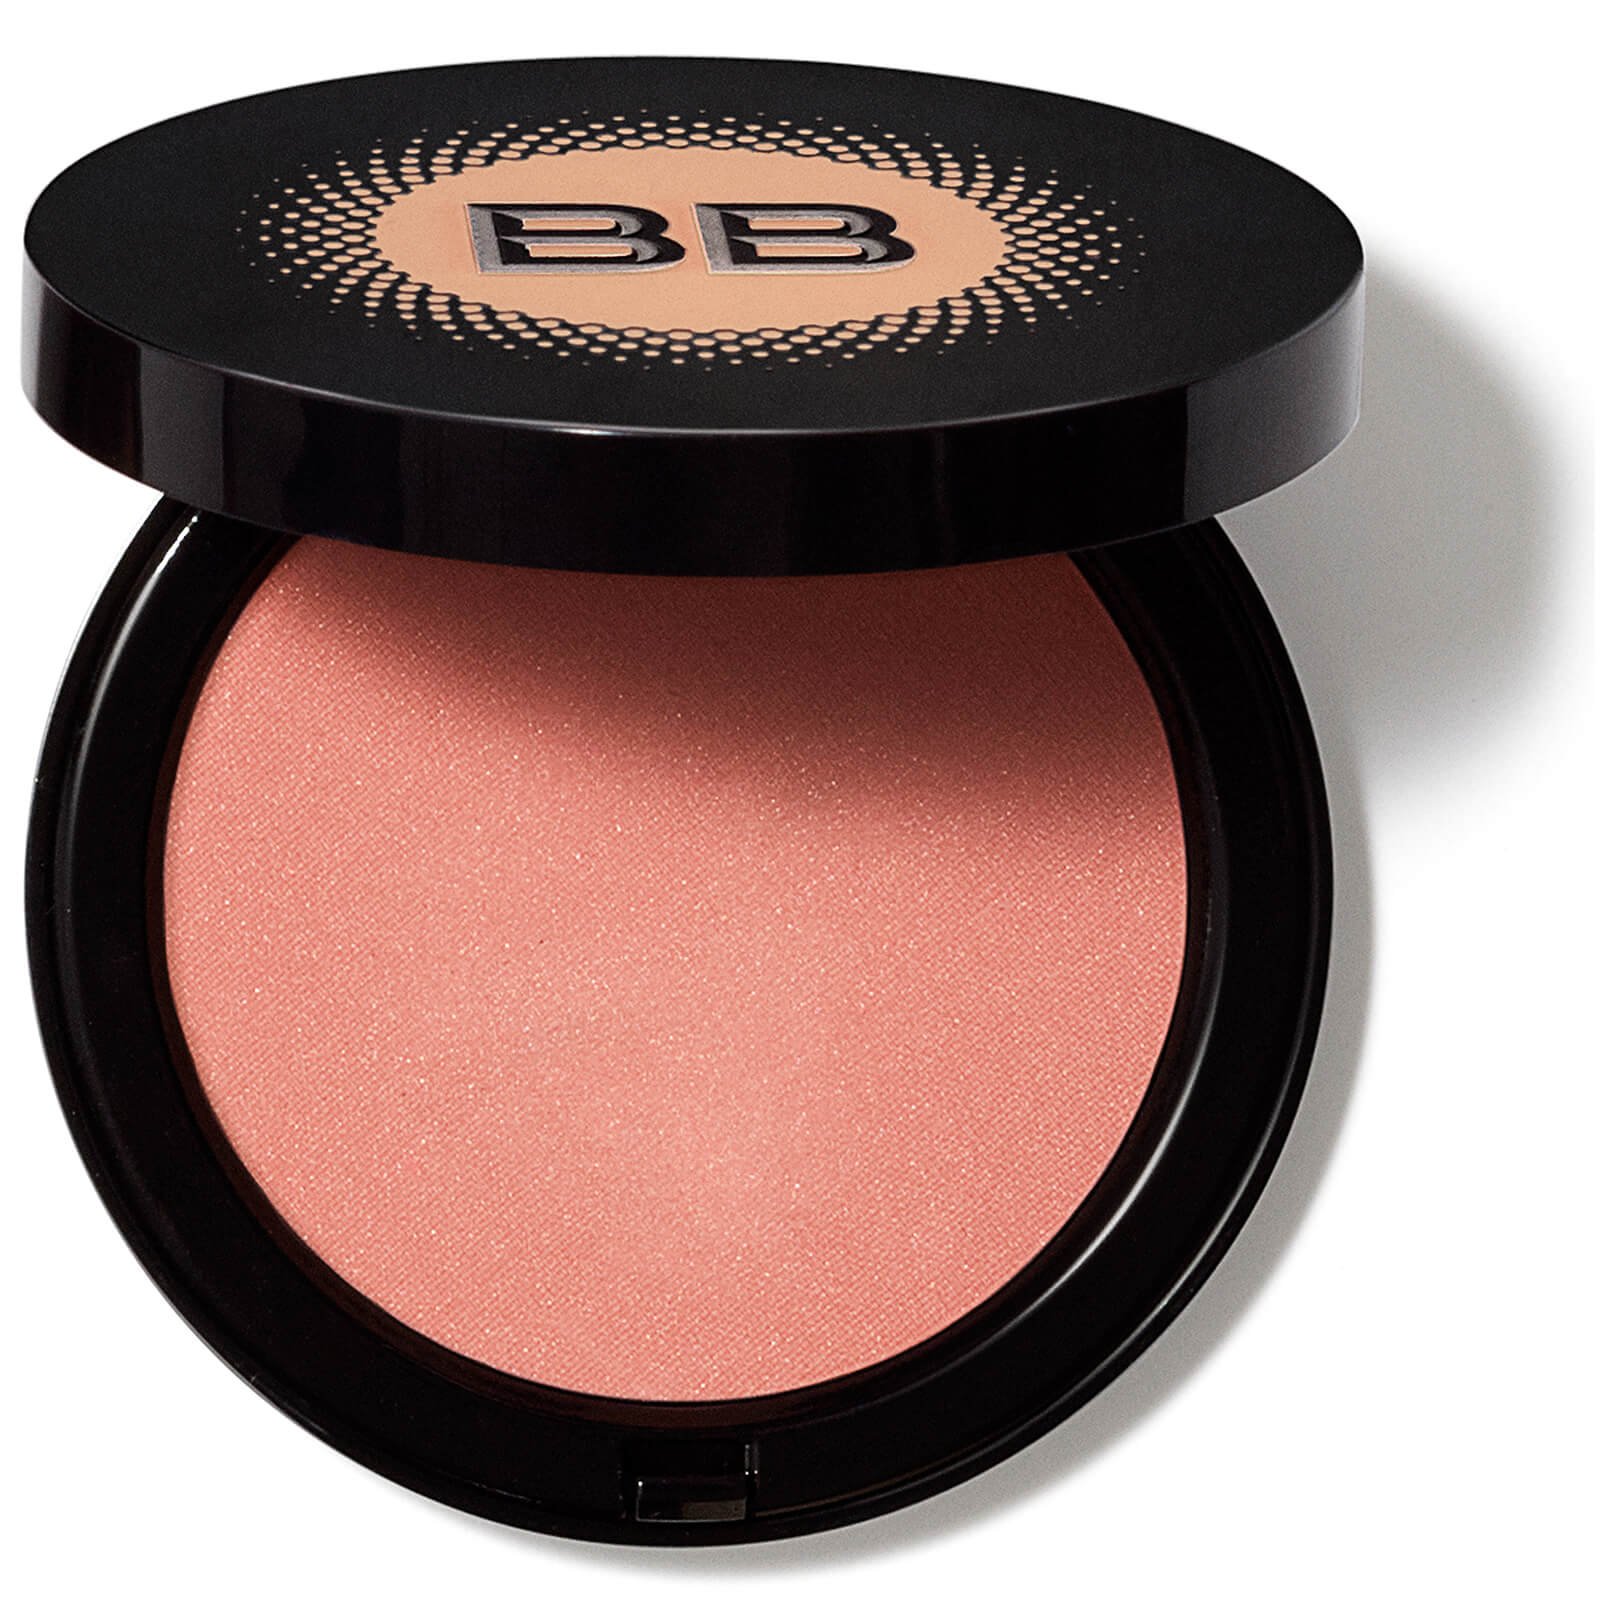 Bobbi Brown Illuminating Bronzing Powder - Santa Barbara